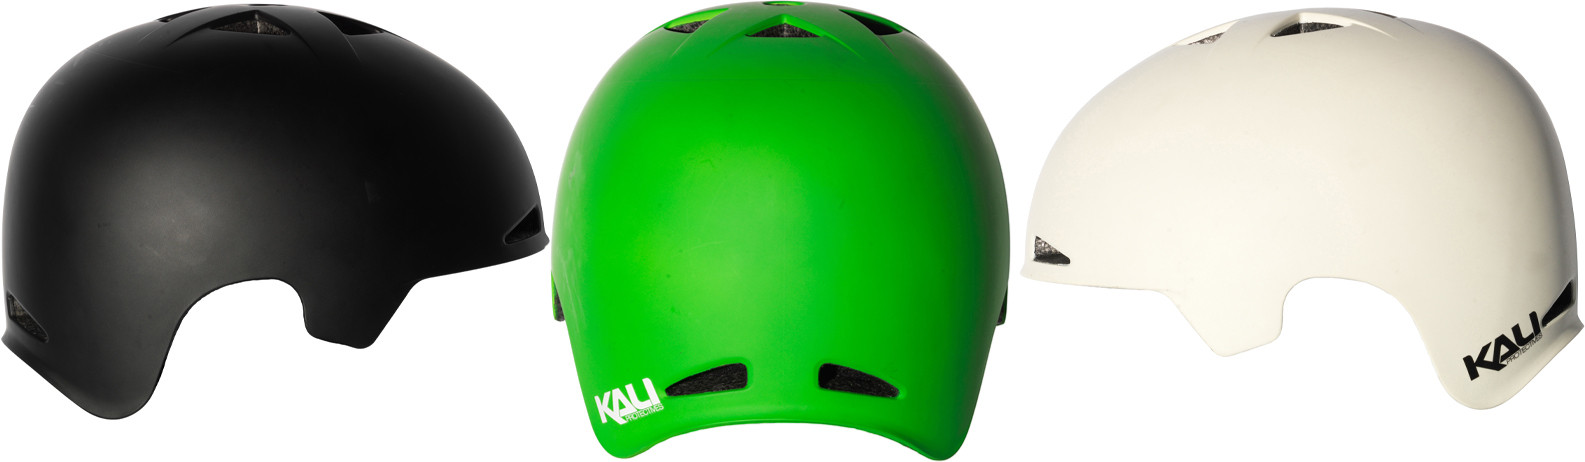 First Look Kali Viva Dj Bmx Helmet Mountain Bikes Feature